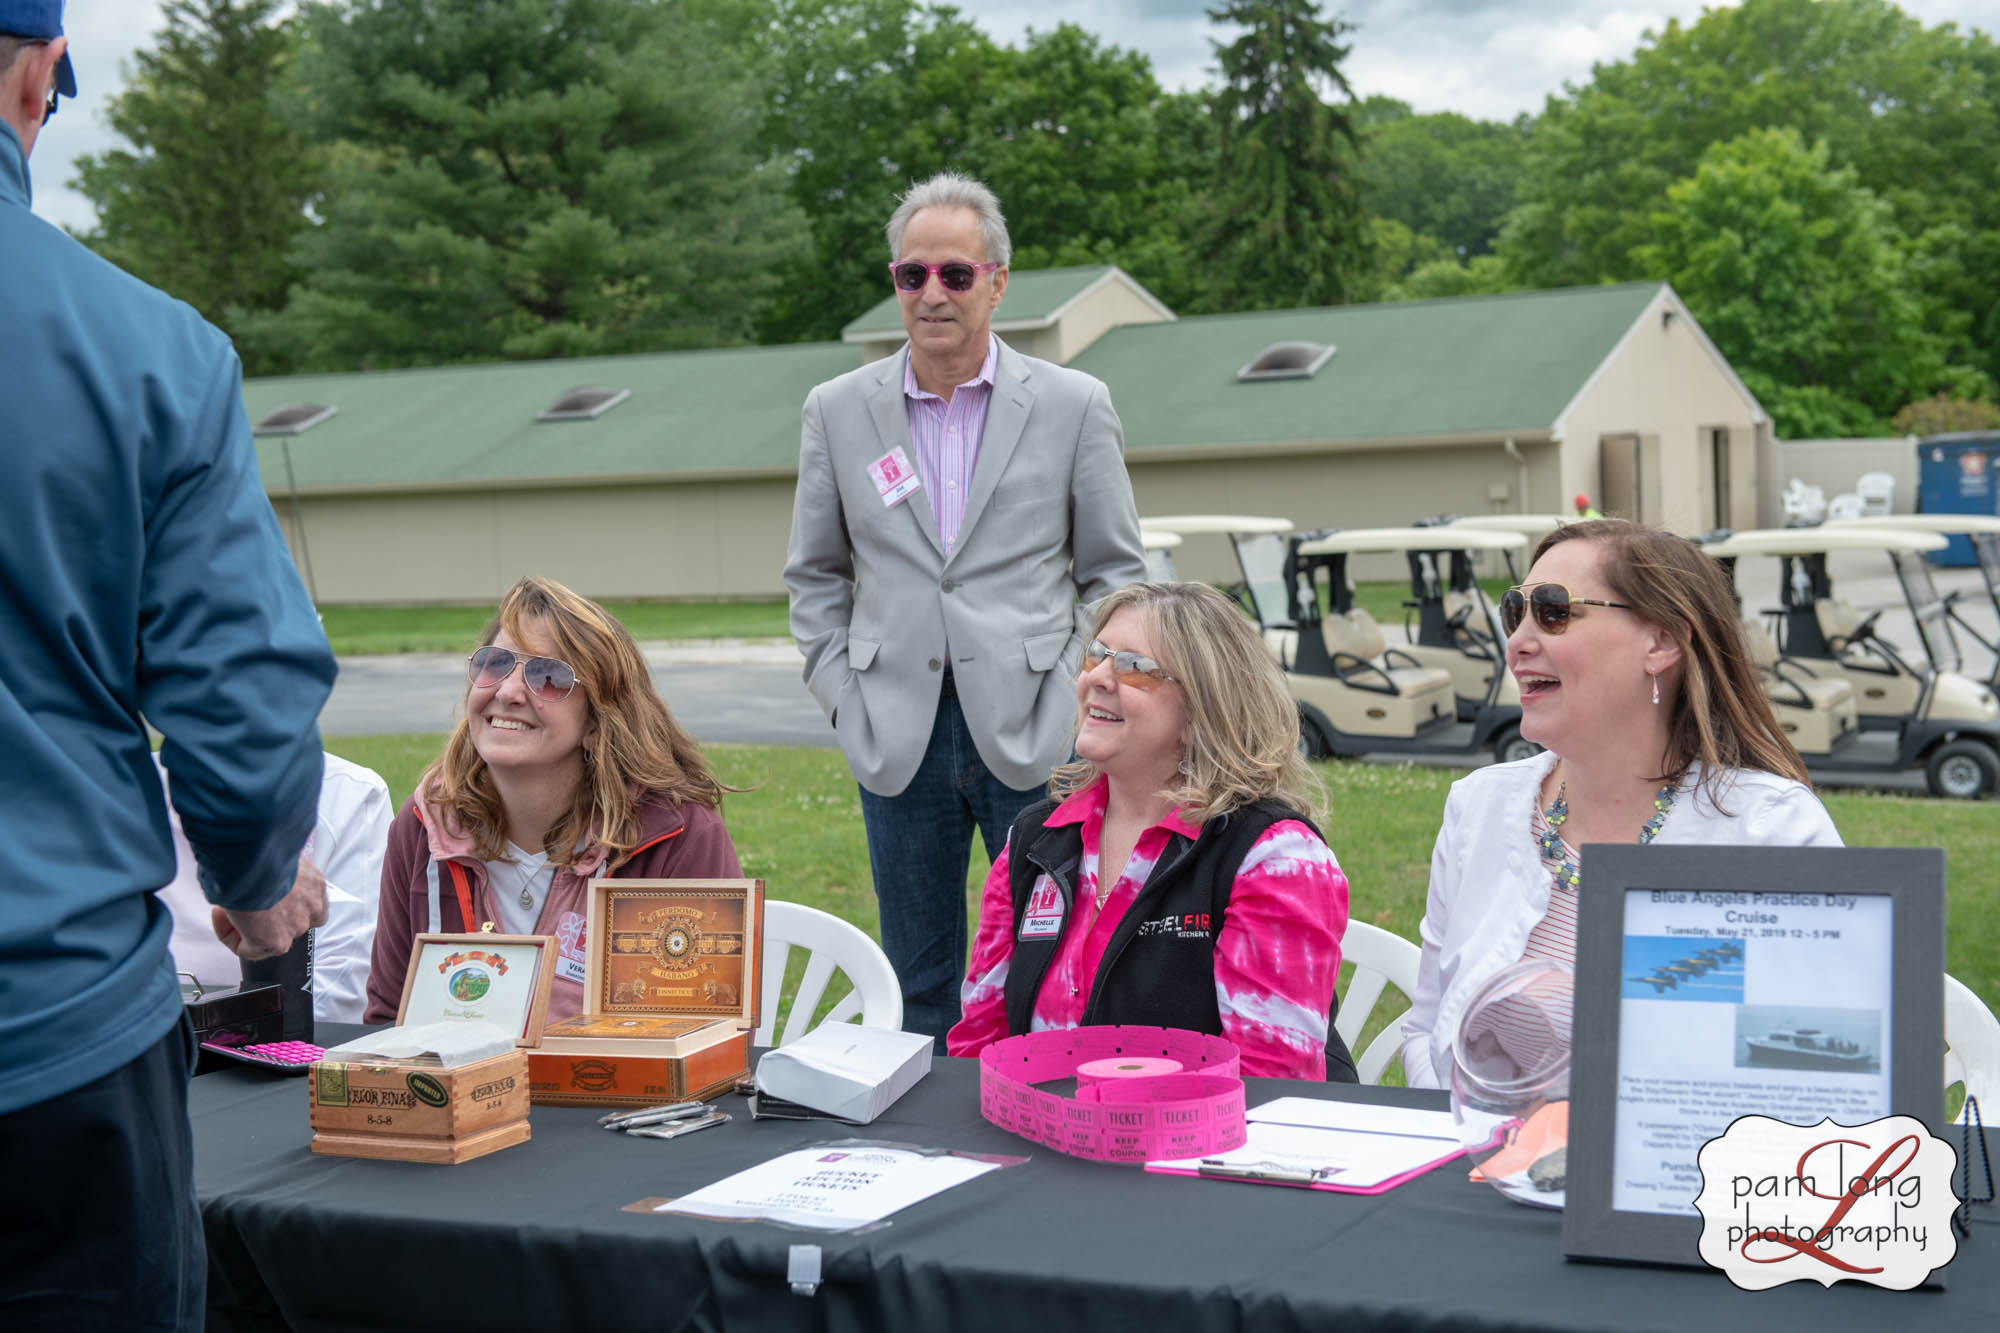 Pam Long Photography Blossoms of Hope Blossoms Pink Greens Golf Classic-11.jpg